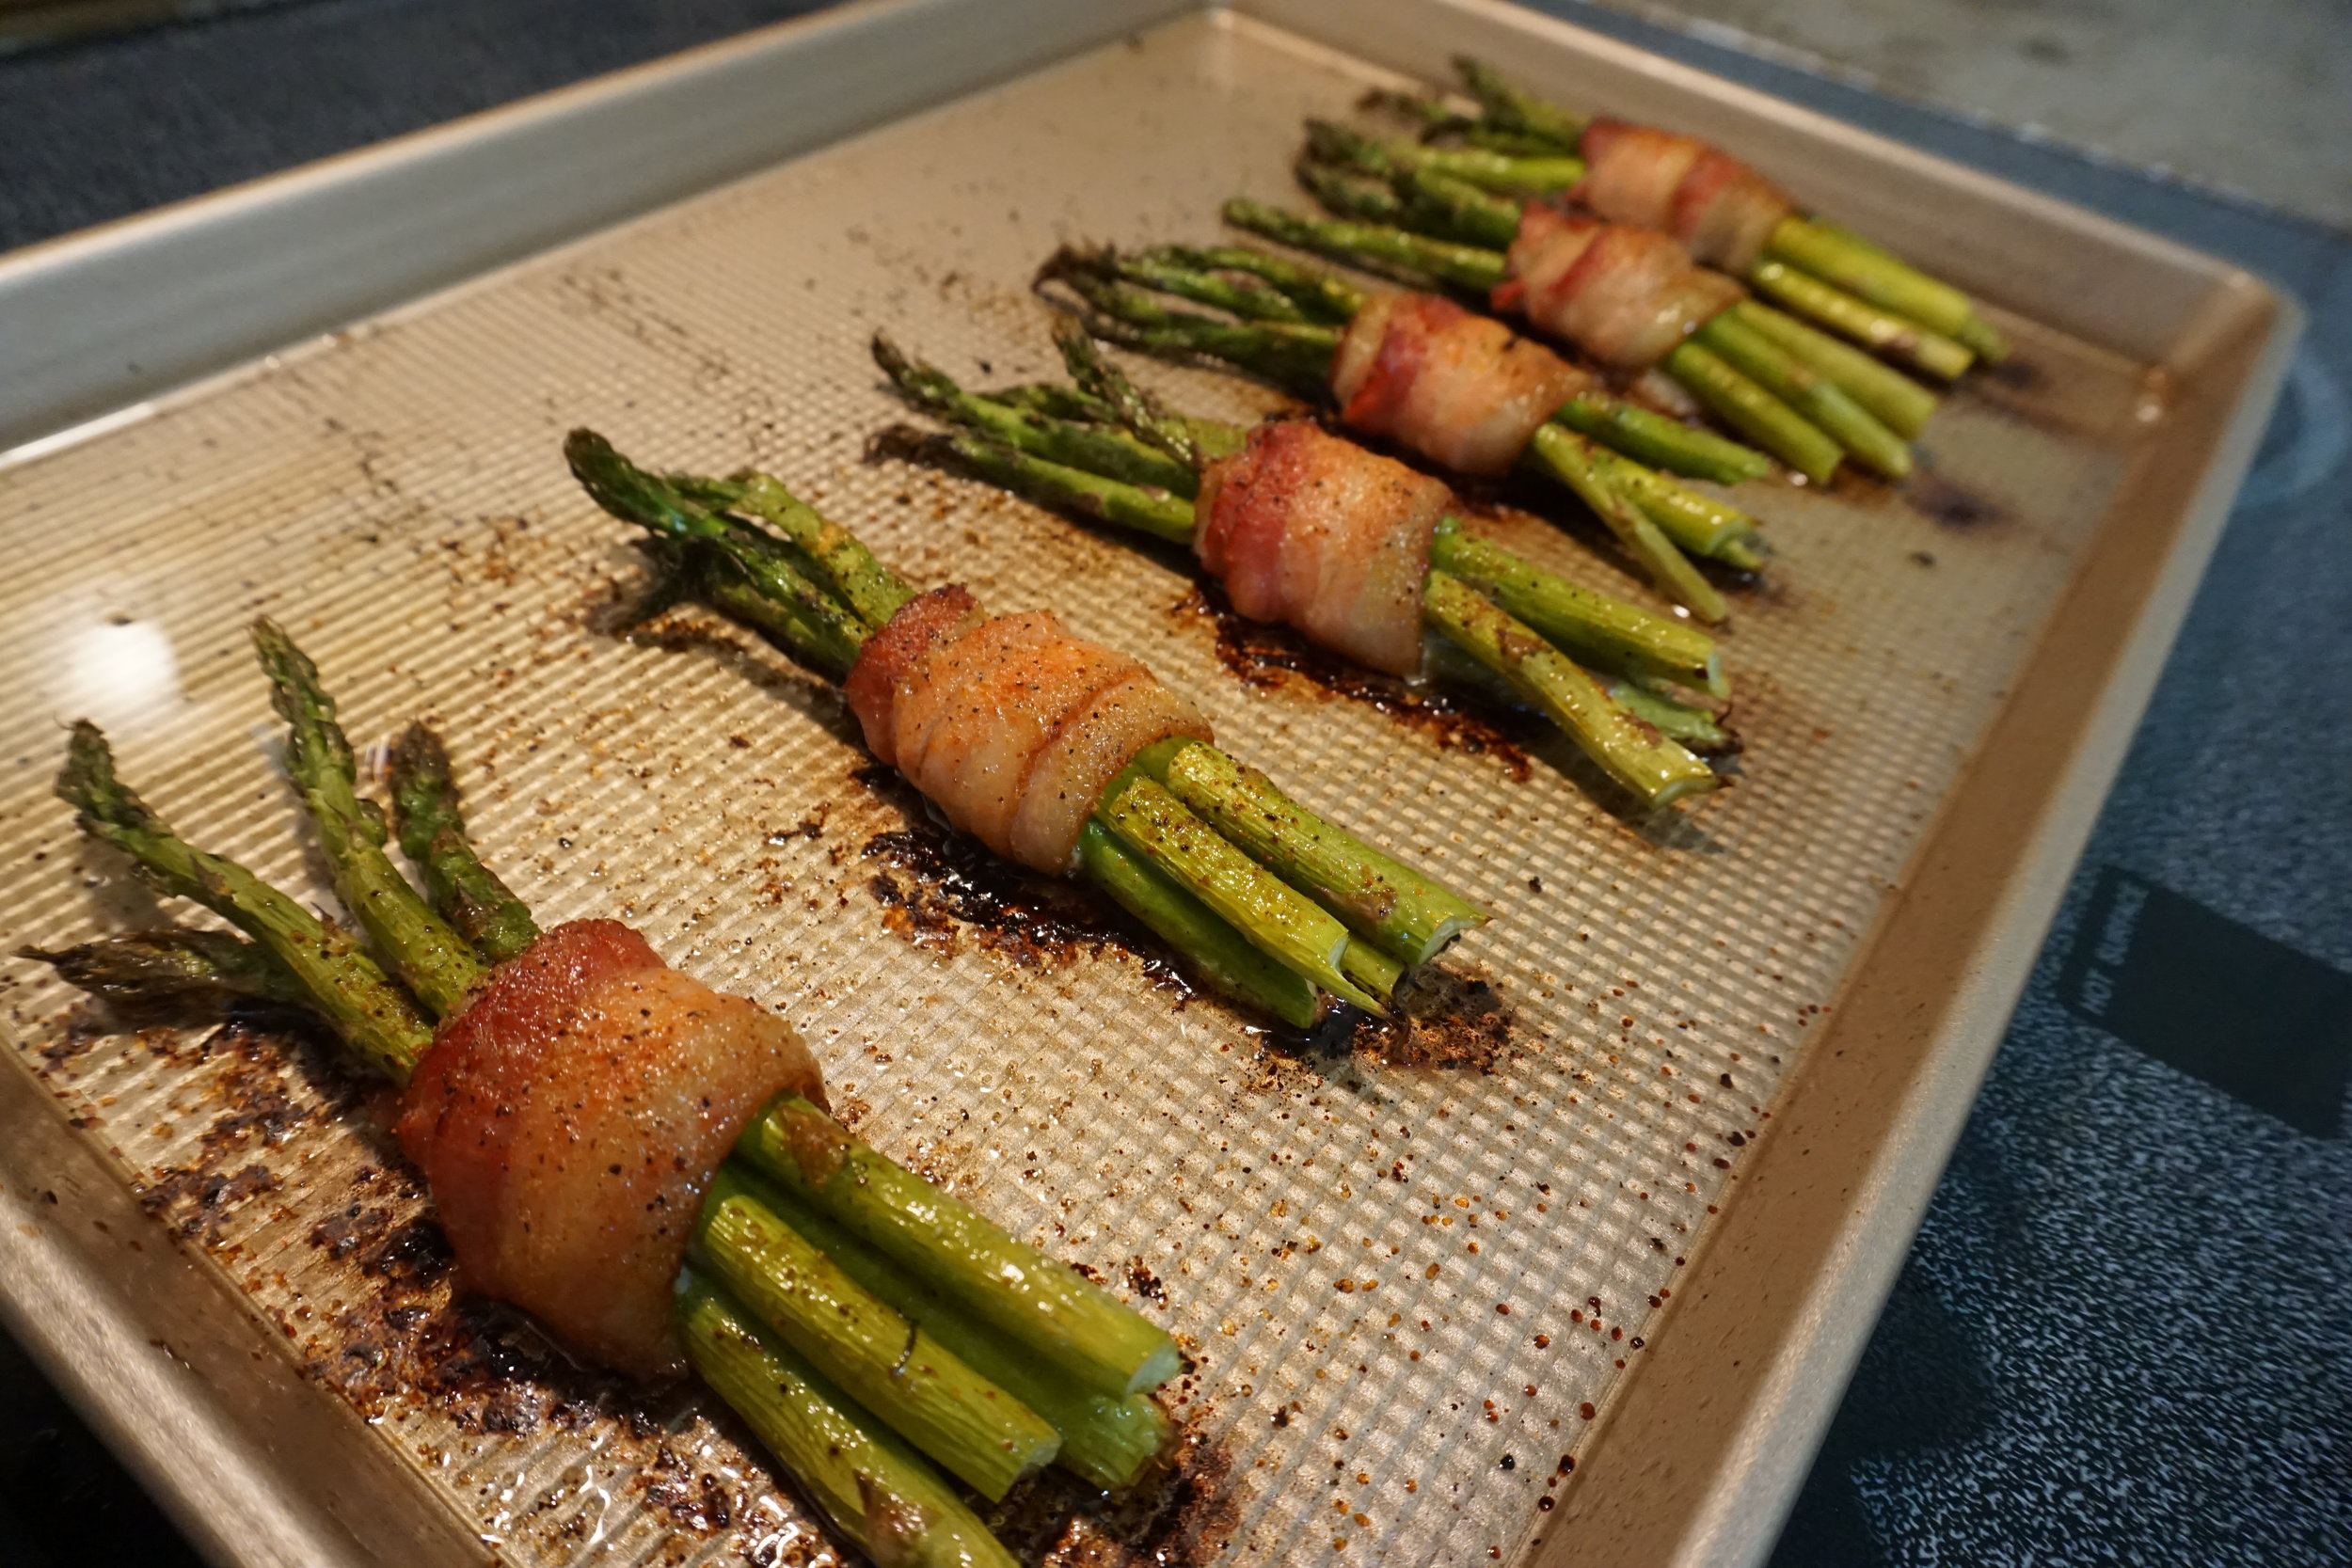 Bacon Wrapped Asparagus - This recipe combines the saltiness from the bacon with the sweet taste of the Everglades Rub that caramelizes when cooking in the over.